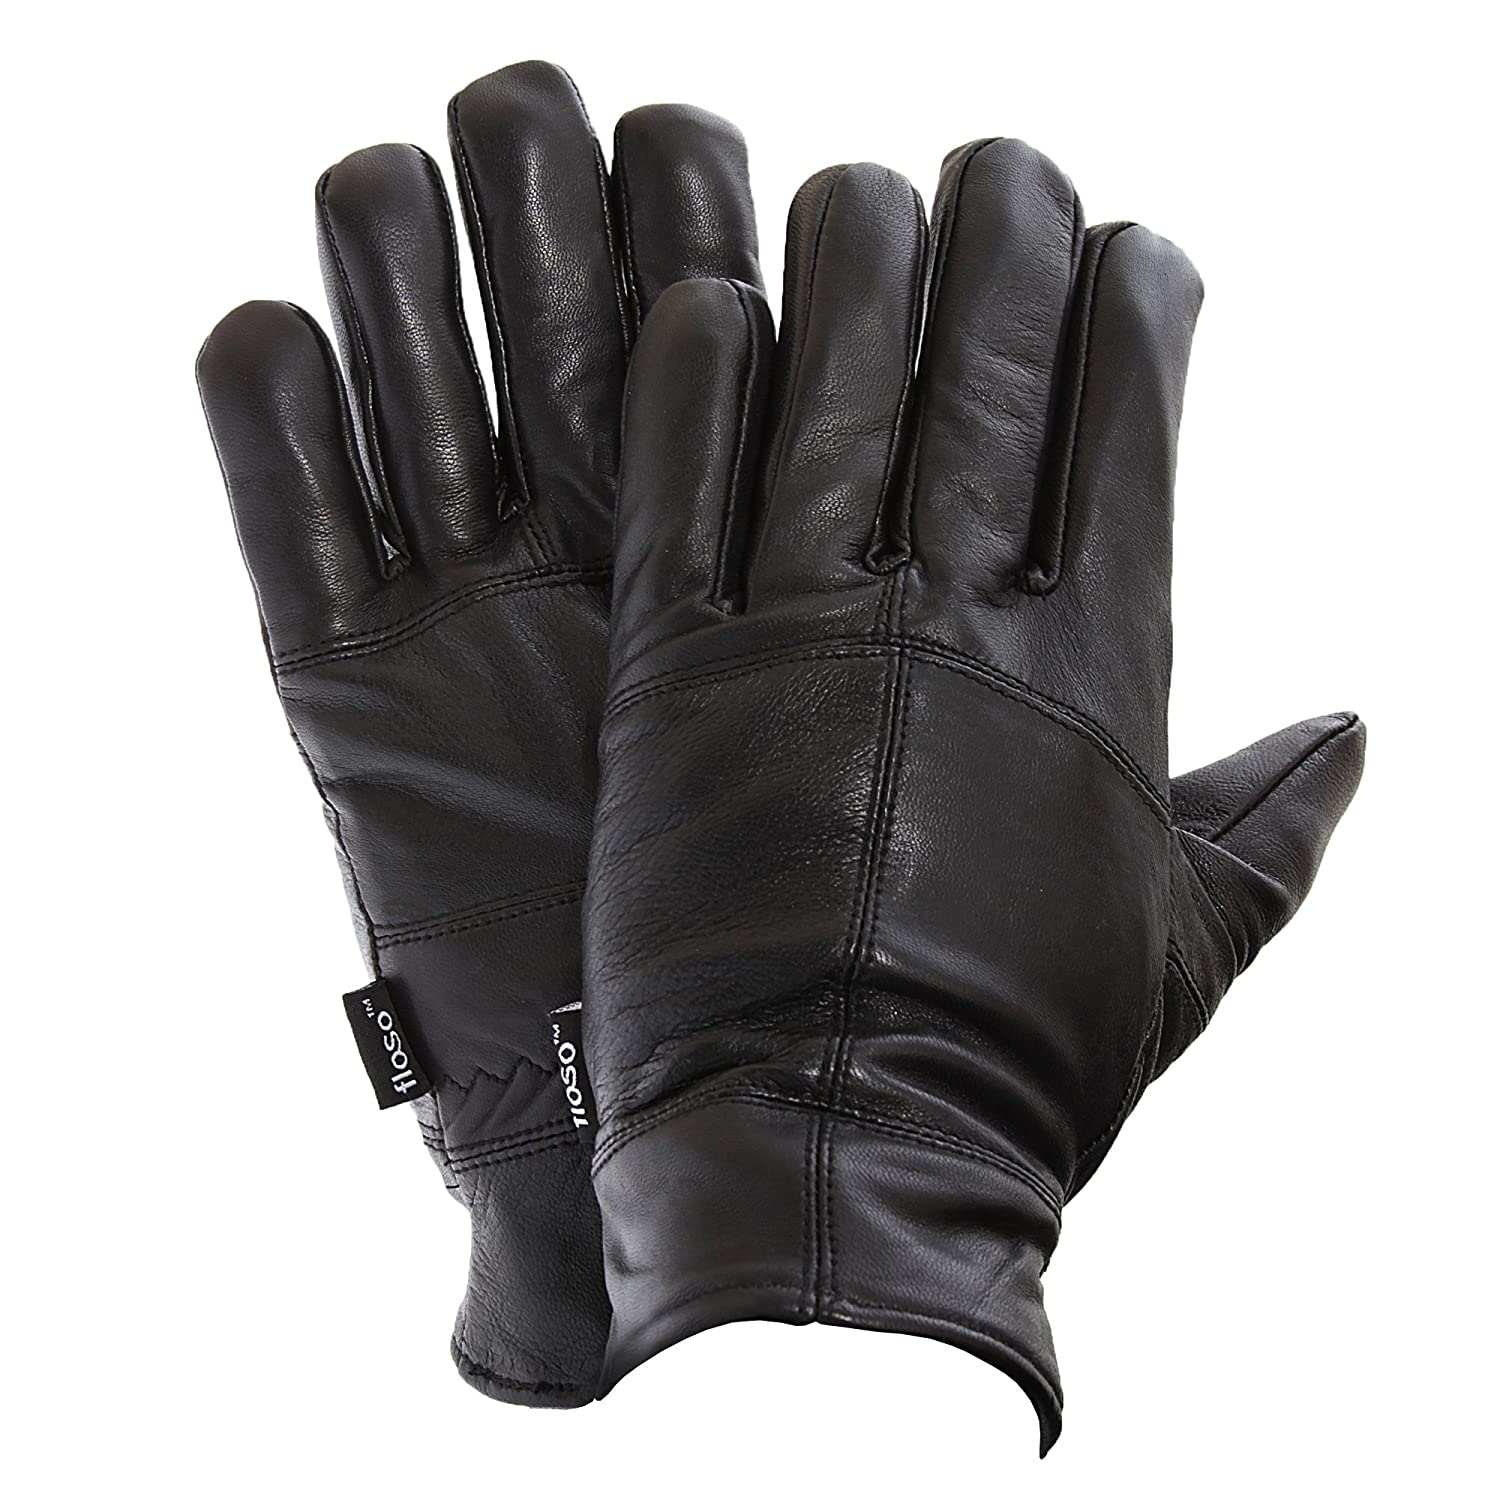 Mens leather gloves size 2x - Floso Mens Thinsulate Lined Genuine Leather Gloves 3m 40g M L Black At Amazon Men S Clothing Store Cold Weather Gloves